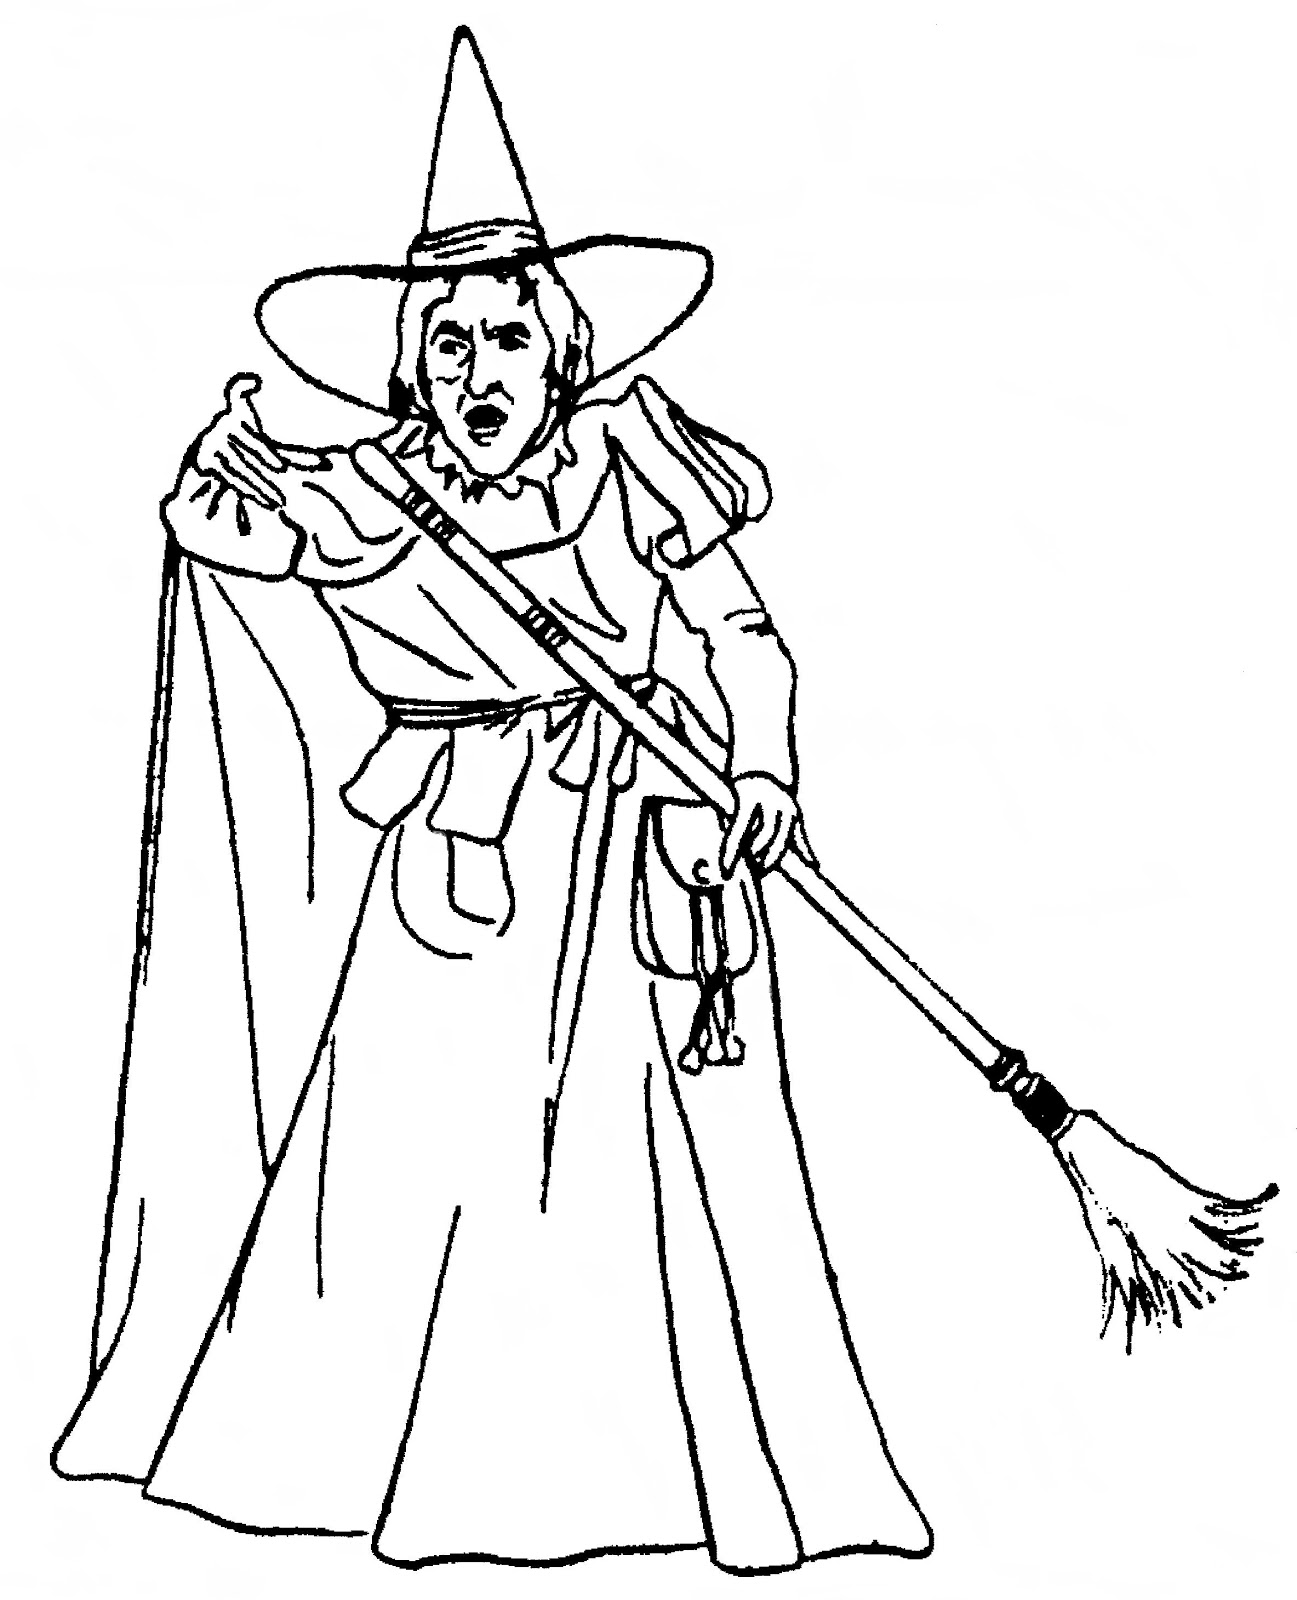 wizard of oz coloring pin by kathy carney on coloring pages halloween wizard coloring oz of